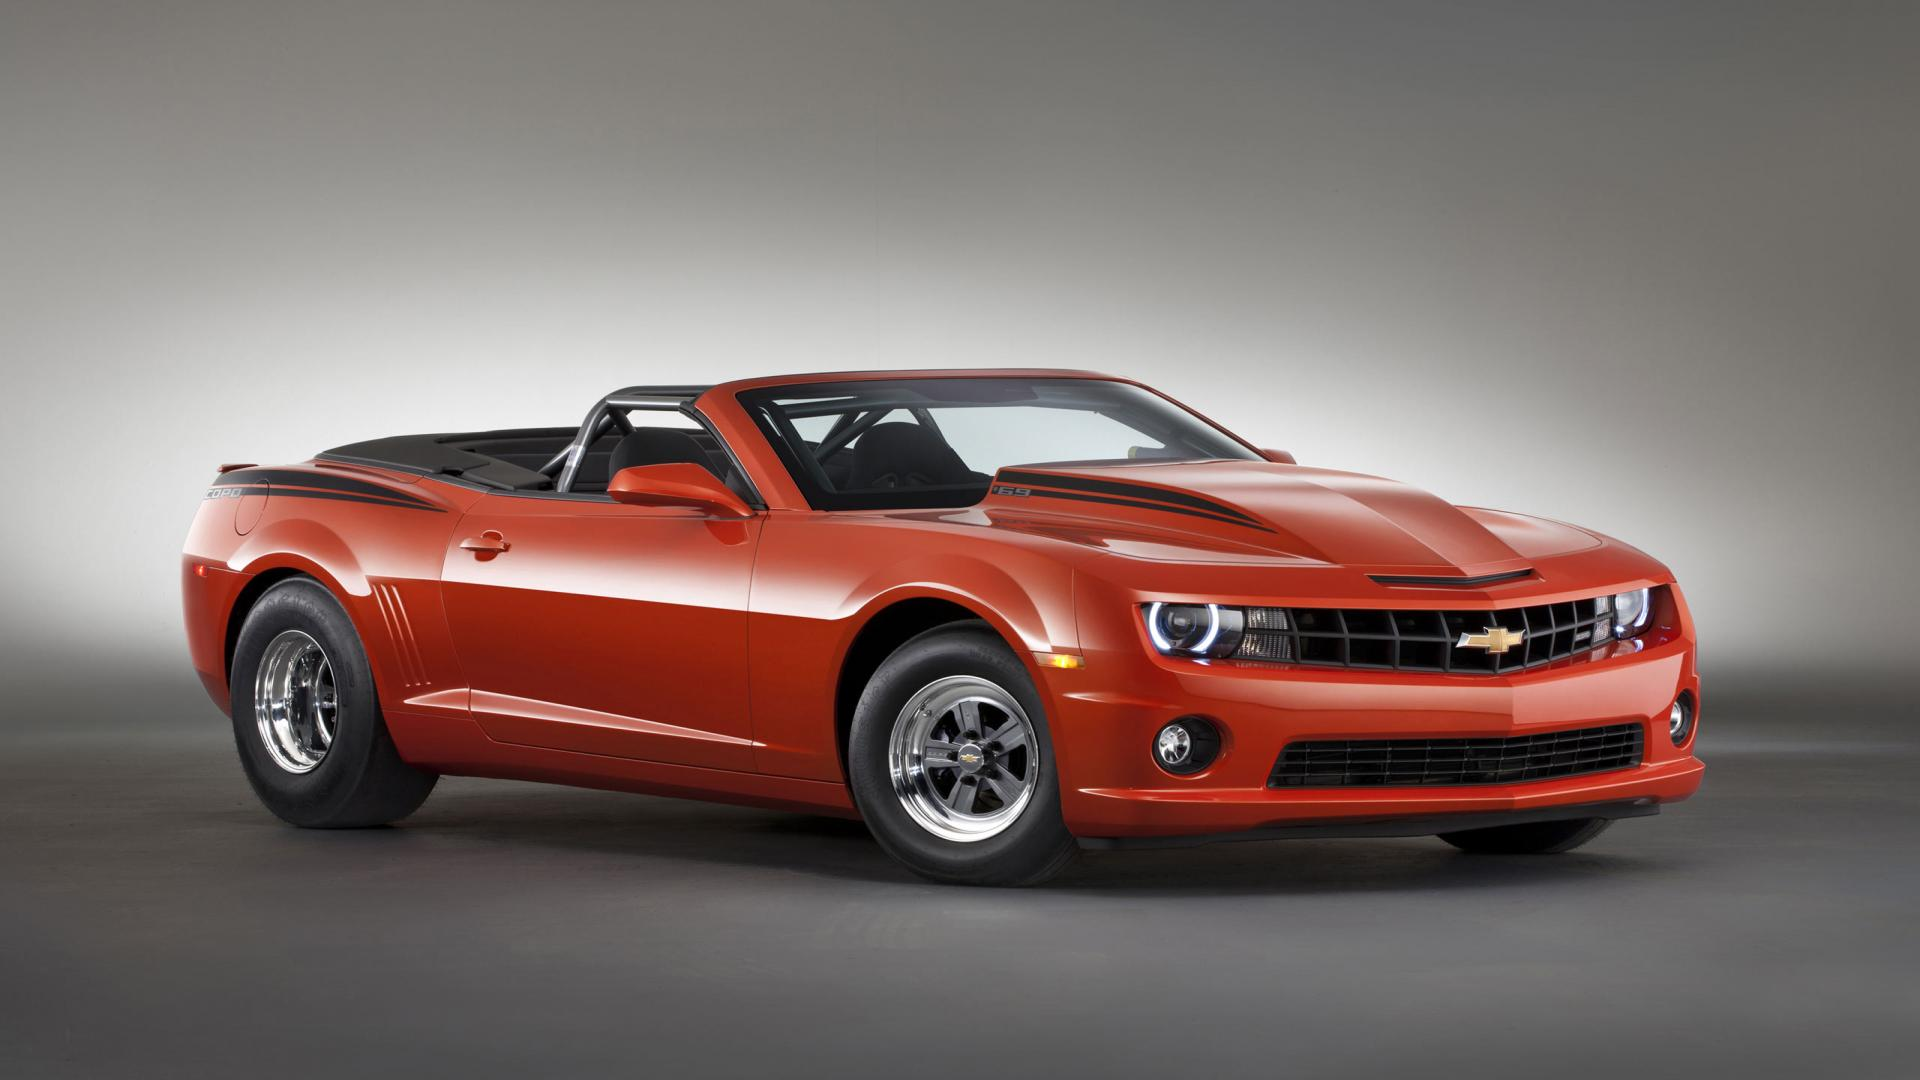 Camaro Wallpaper HD Download 1920x1080